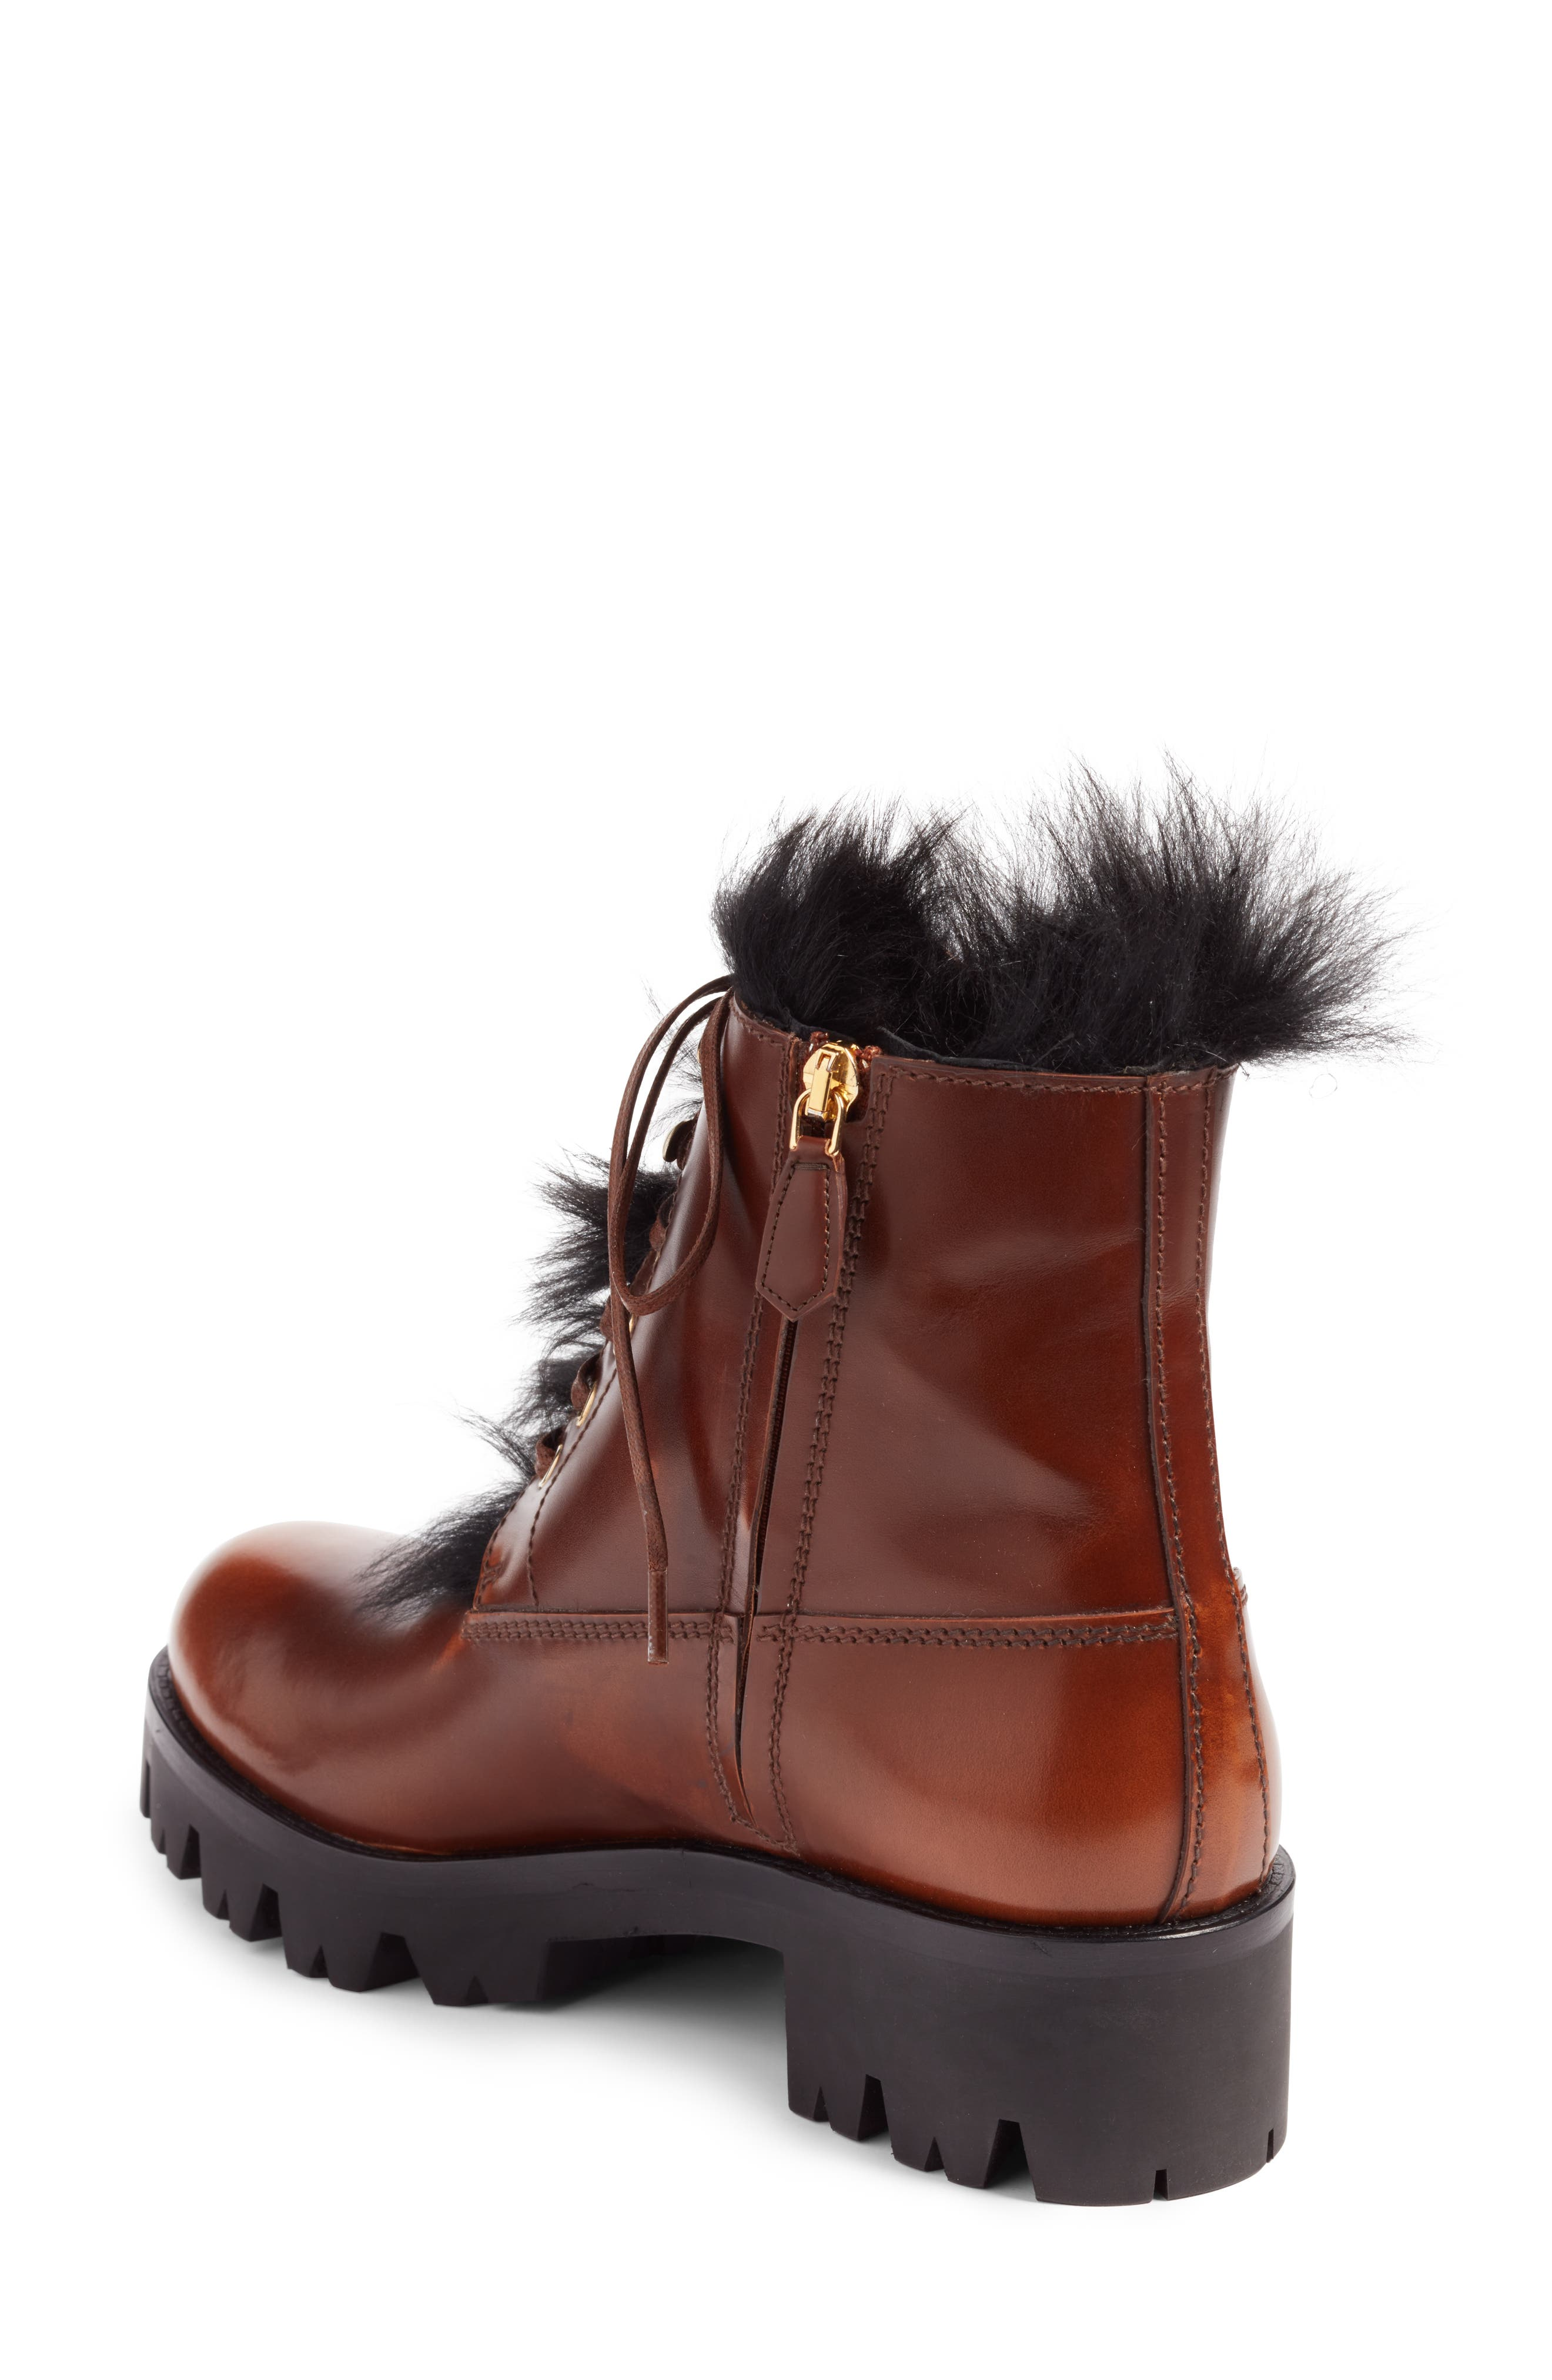 Calfskin Boot with Genuine Shearling Trim,                             Alternate thumbnail 2, color,                             200